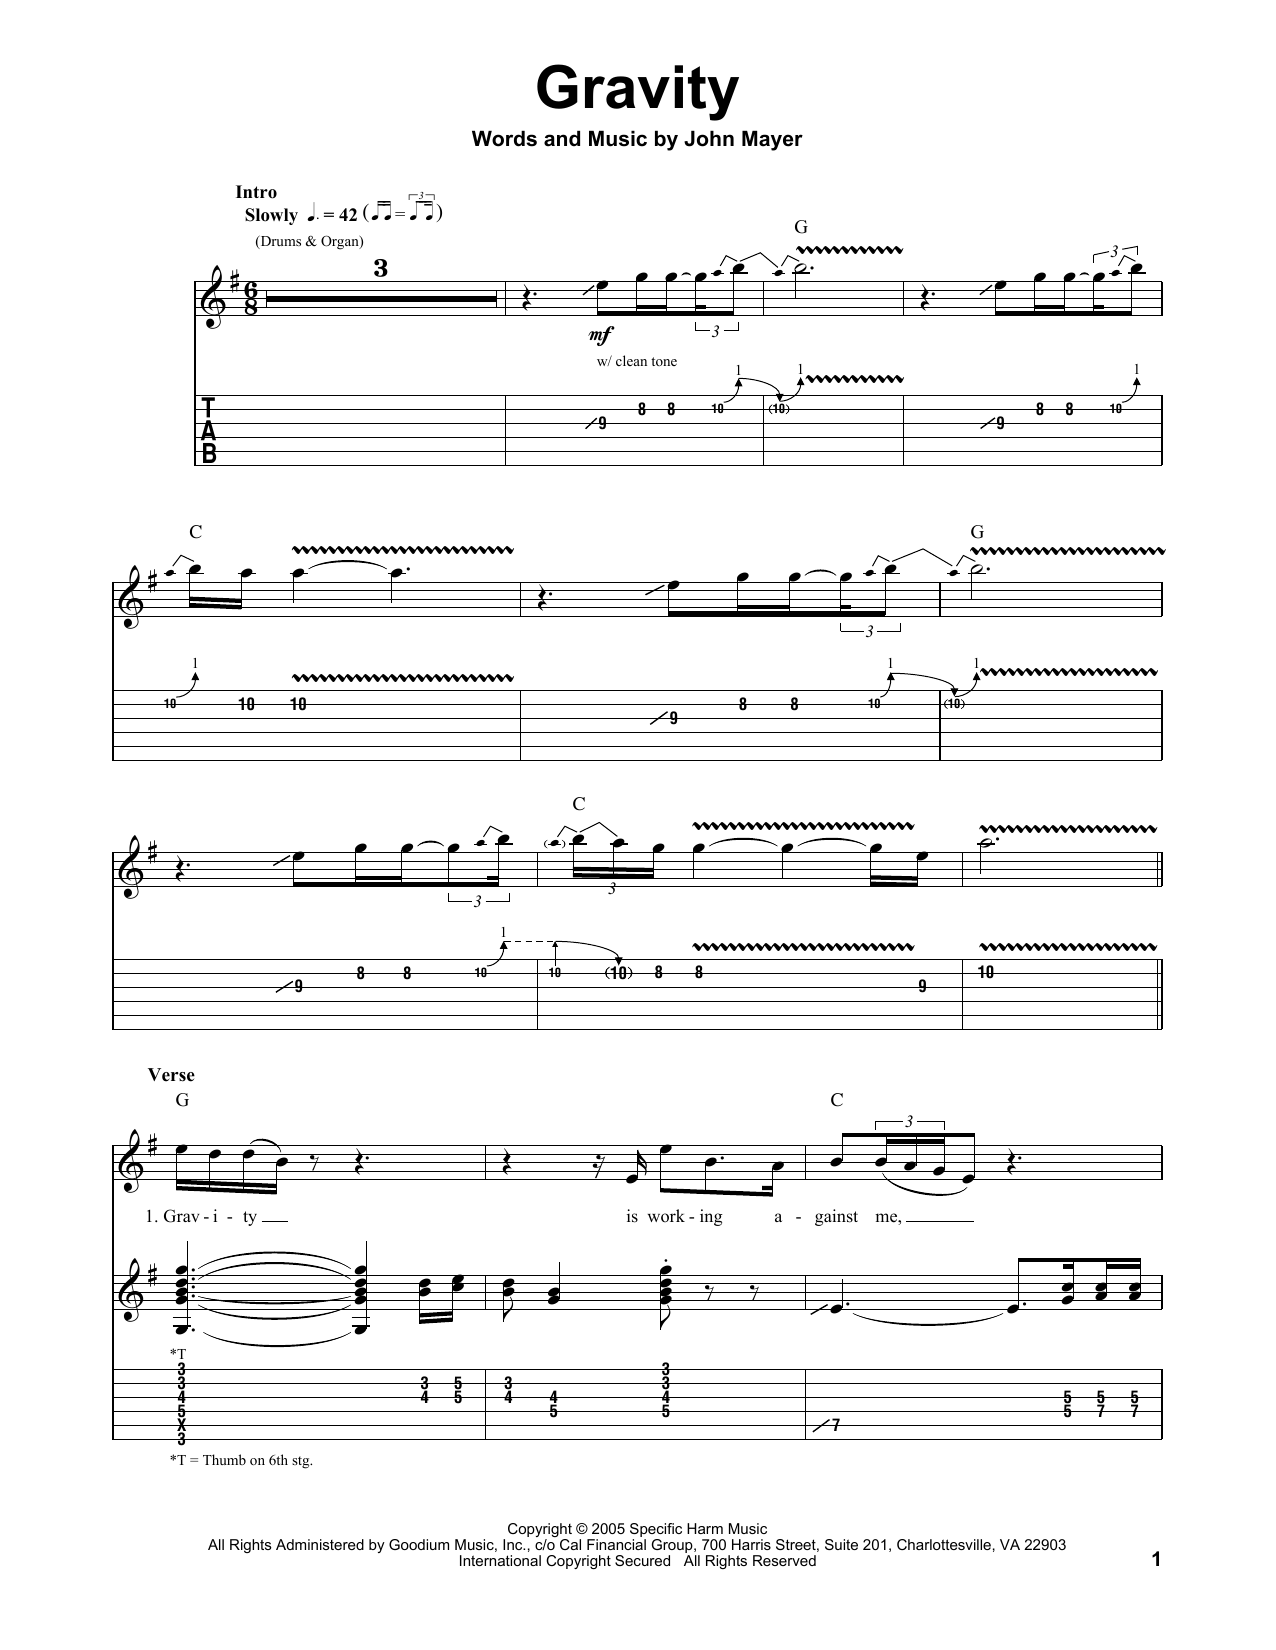 Gravity by John Mayer - Guitar Tab Play-Along - Guitar Instructor